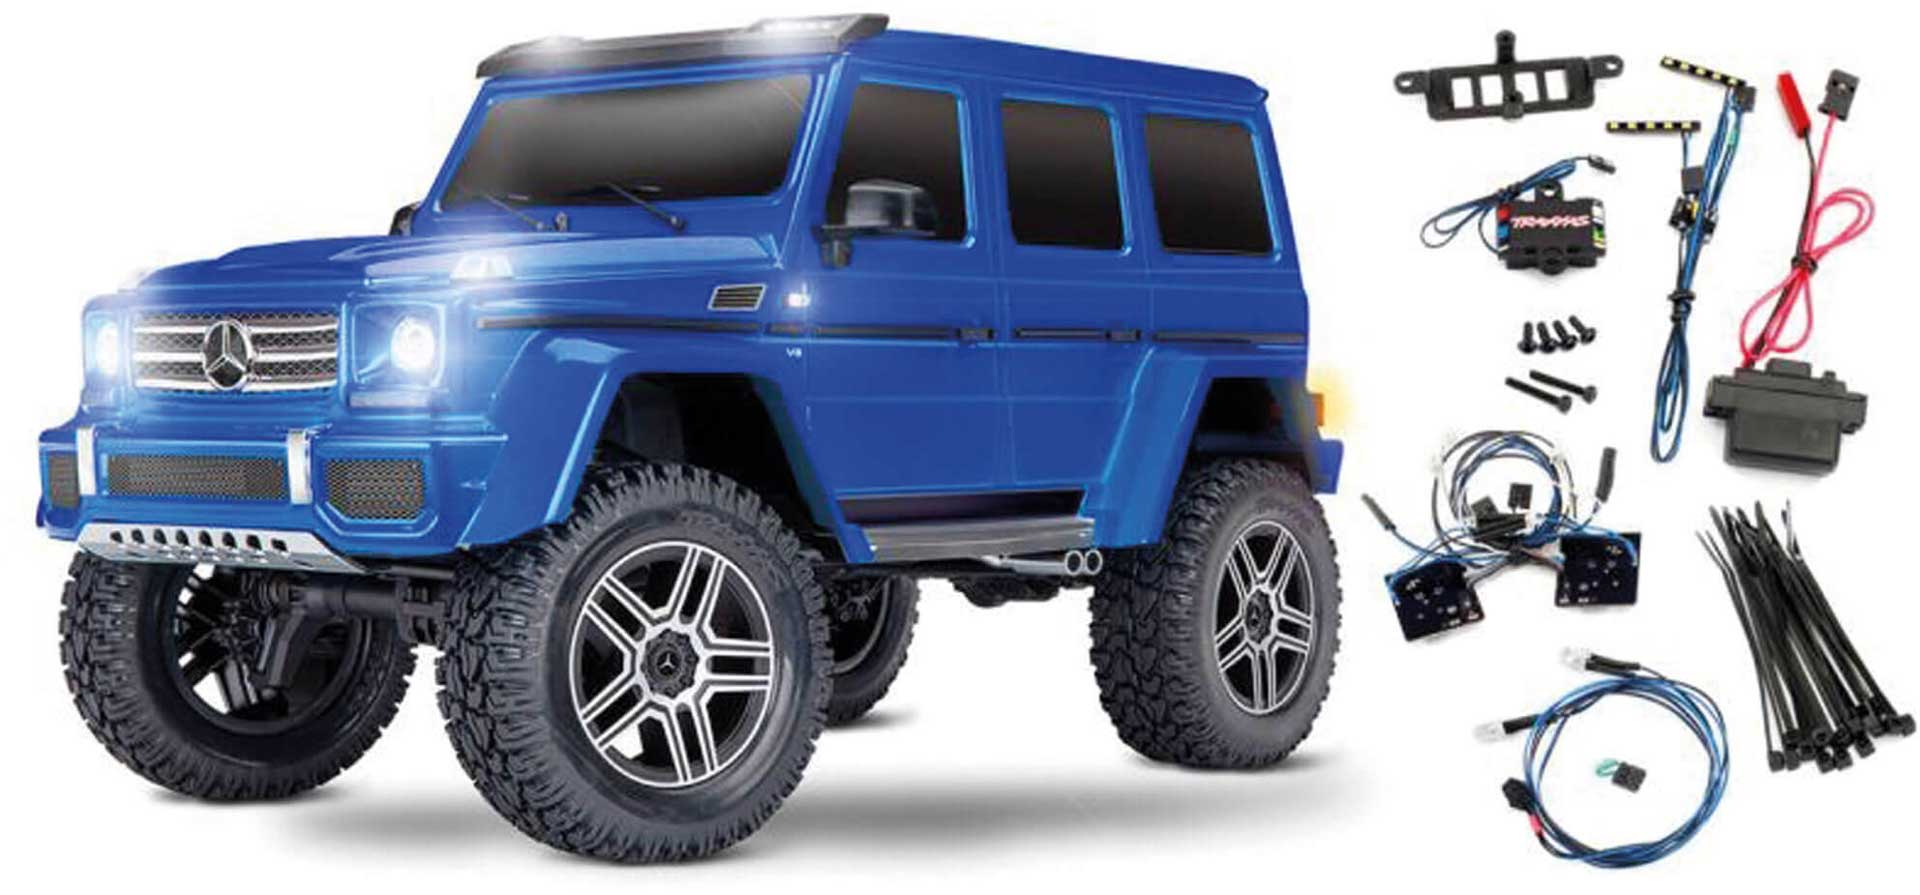 TRAXXAS TRX-4 MERCEDES G 4X4² Blue RTR withour Battery1/10 4WD SCALE-CRAWLER BRUSHED +